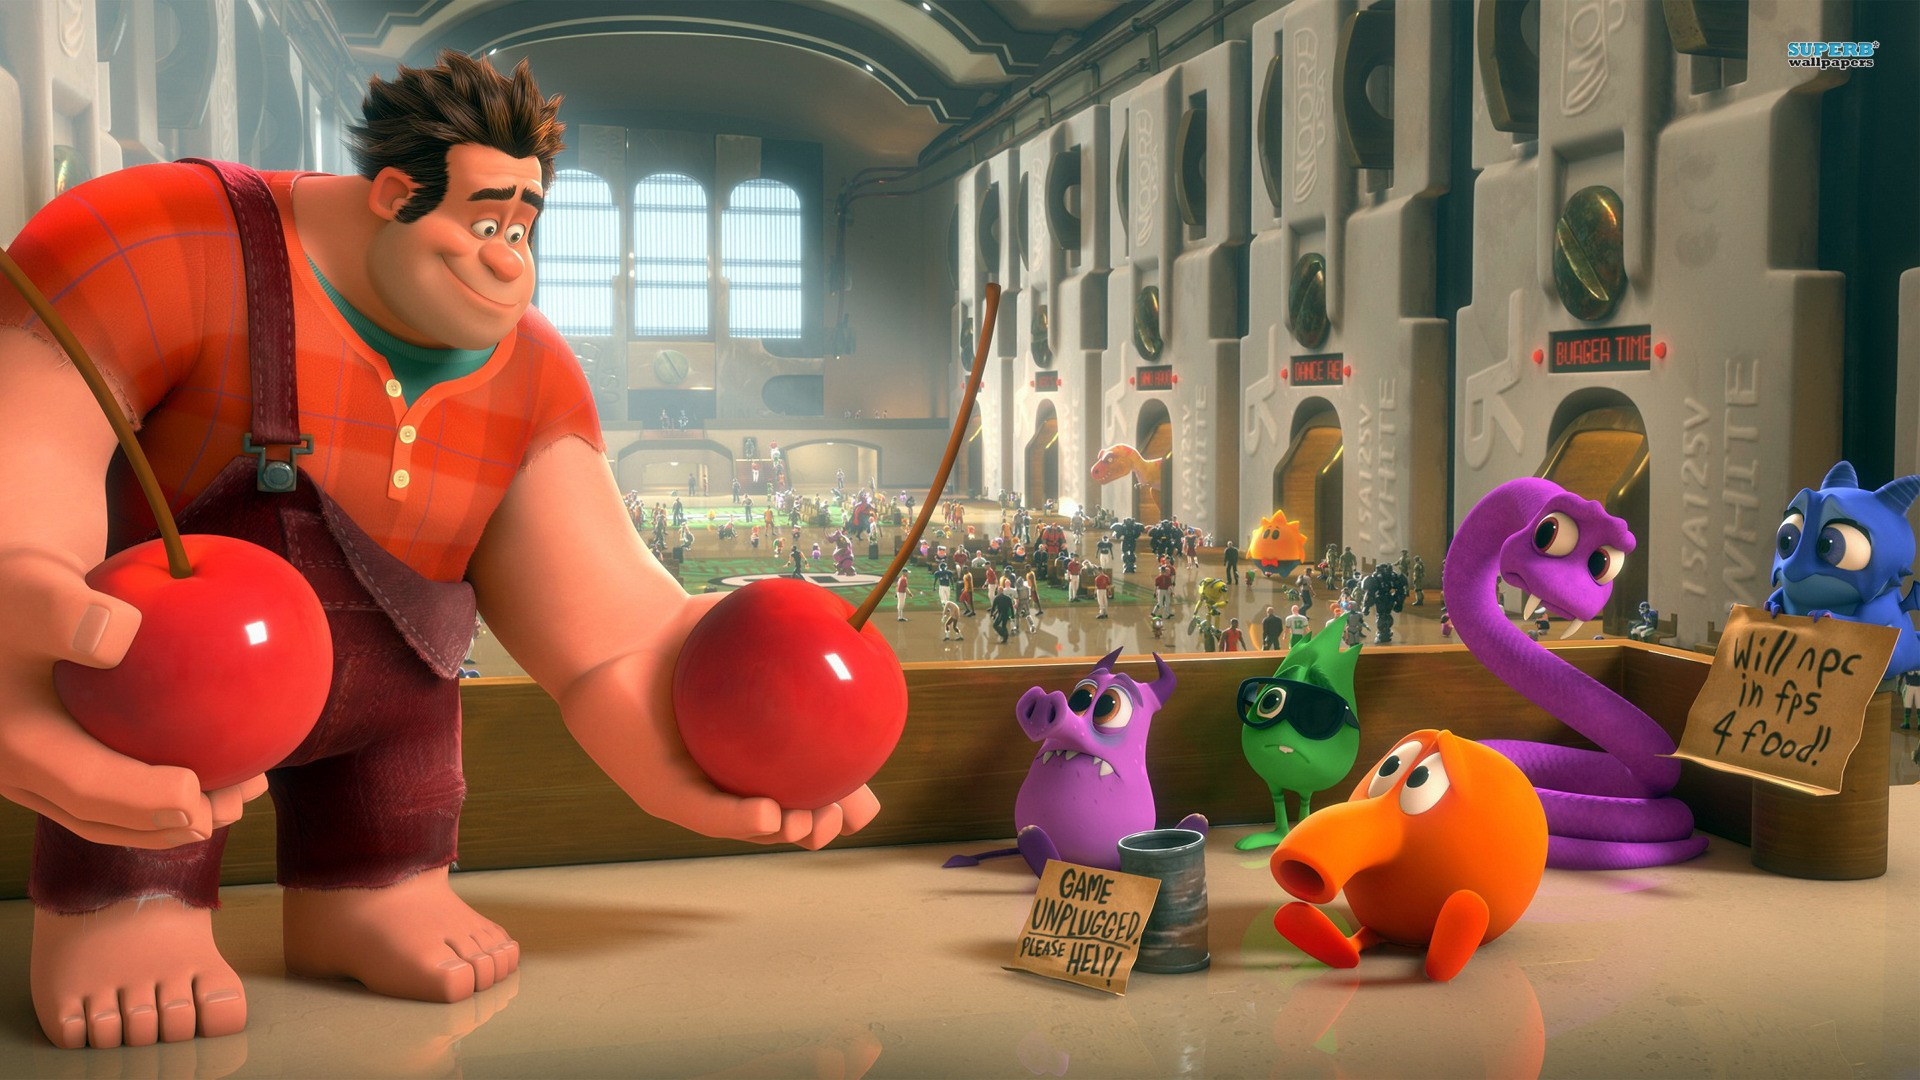 For Wreck it Ralph, a  physically based shading workflow  was developed to make the materials feel more real